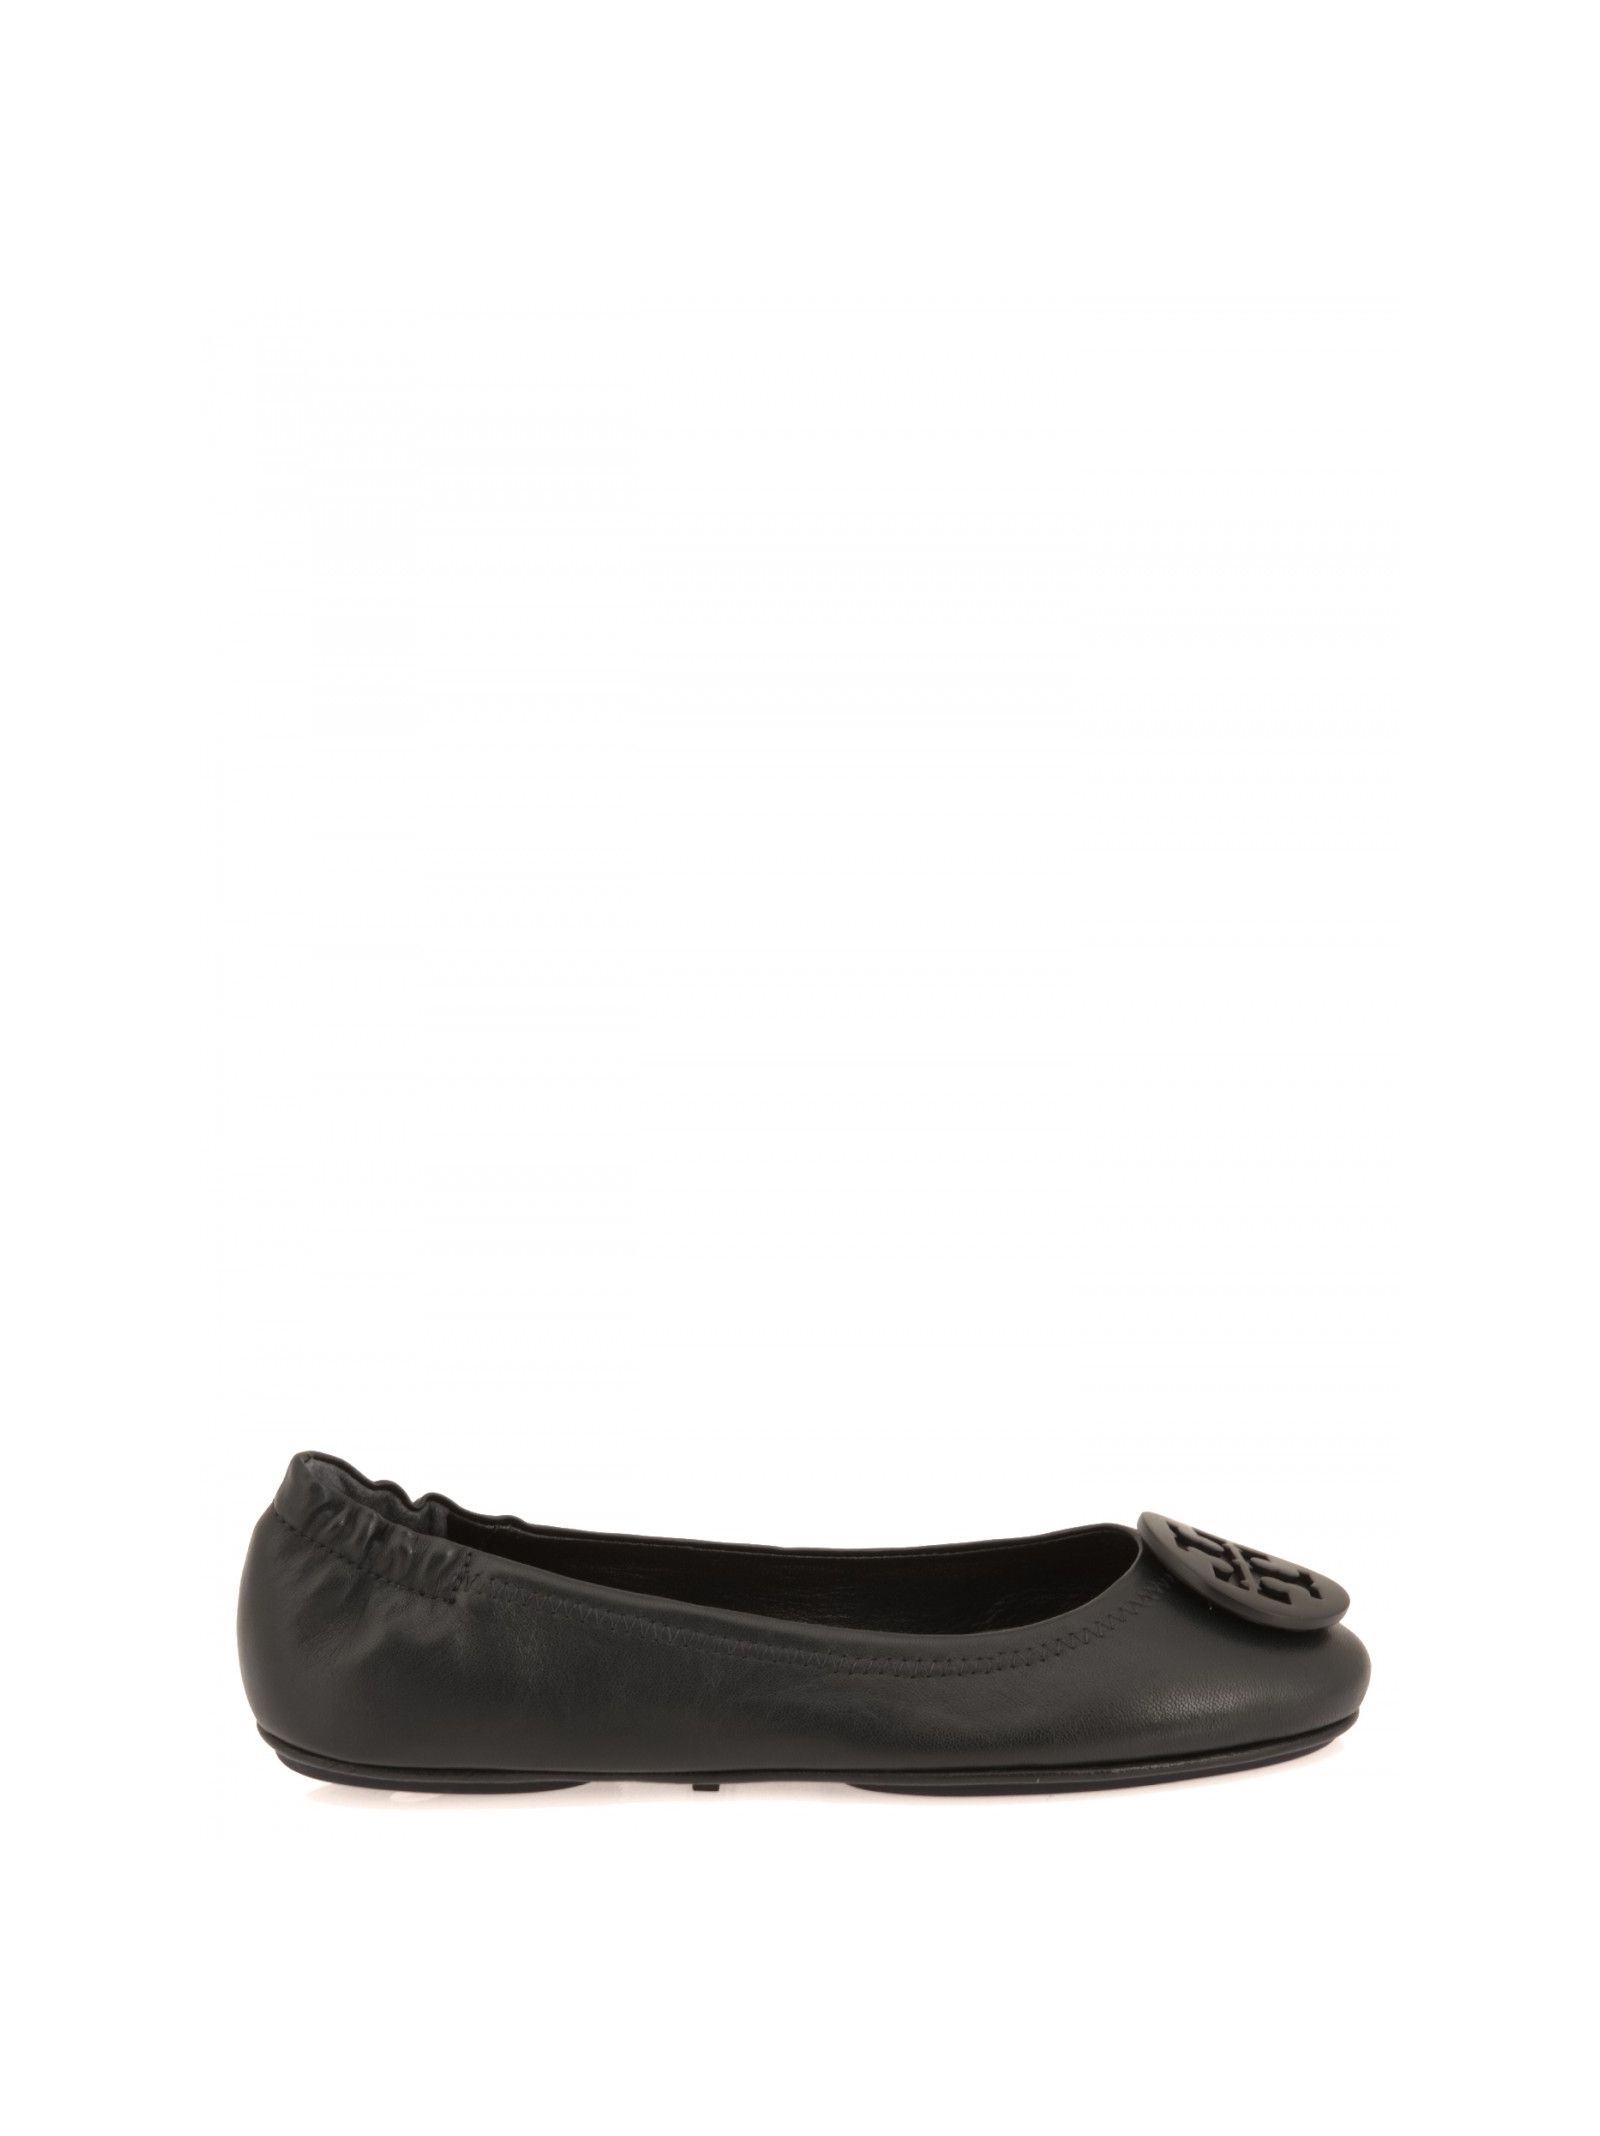 tory burch female tory burch leather ballet flats